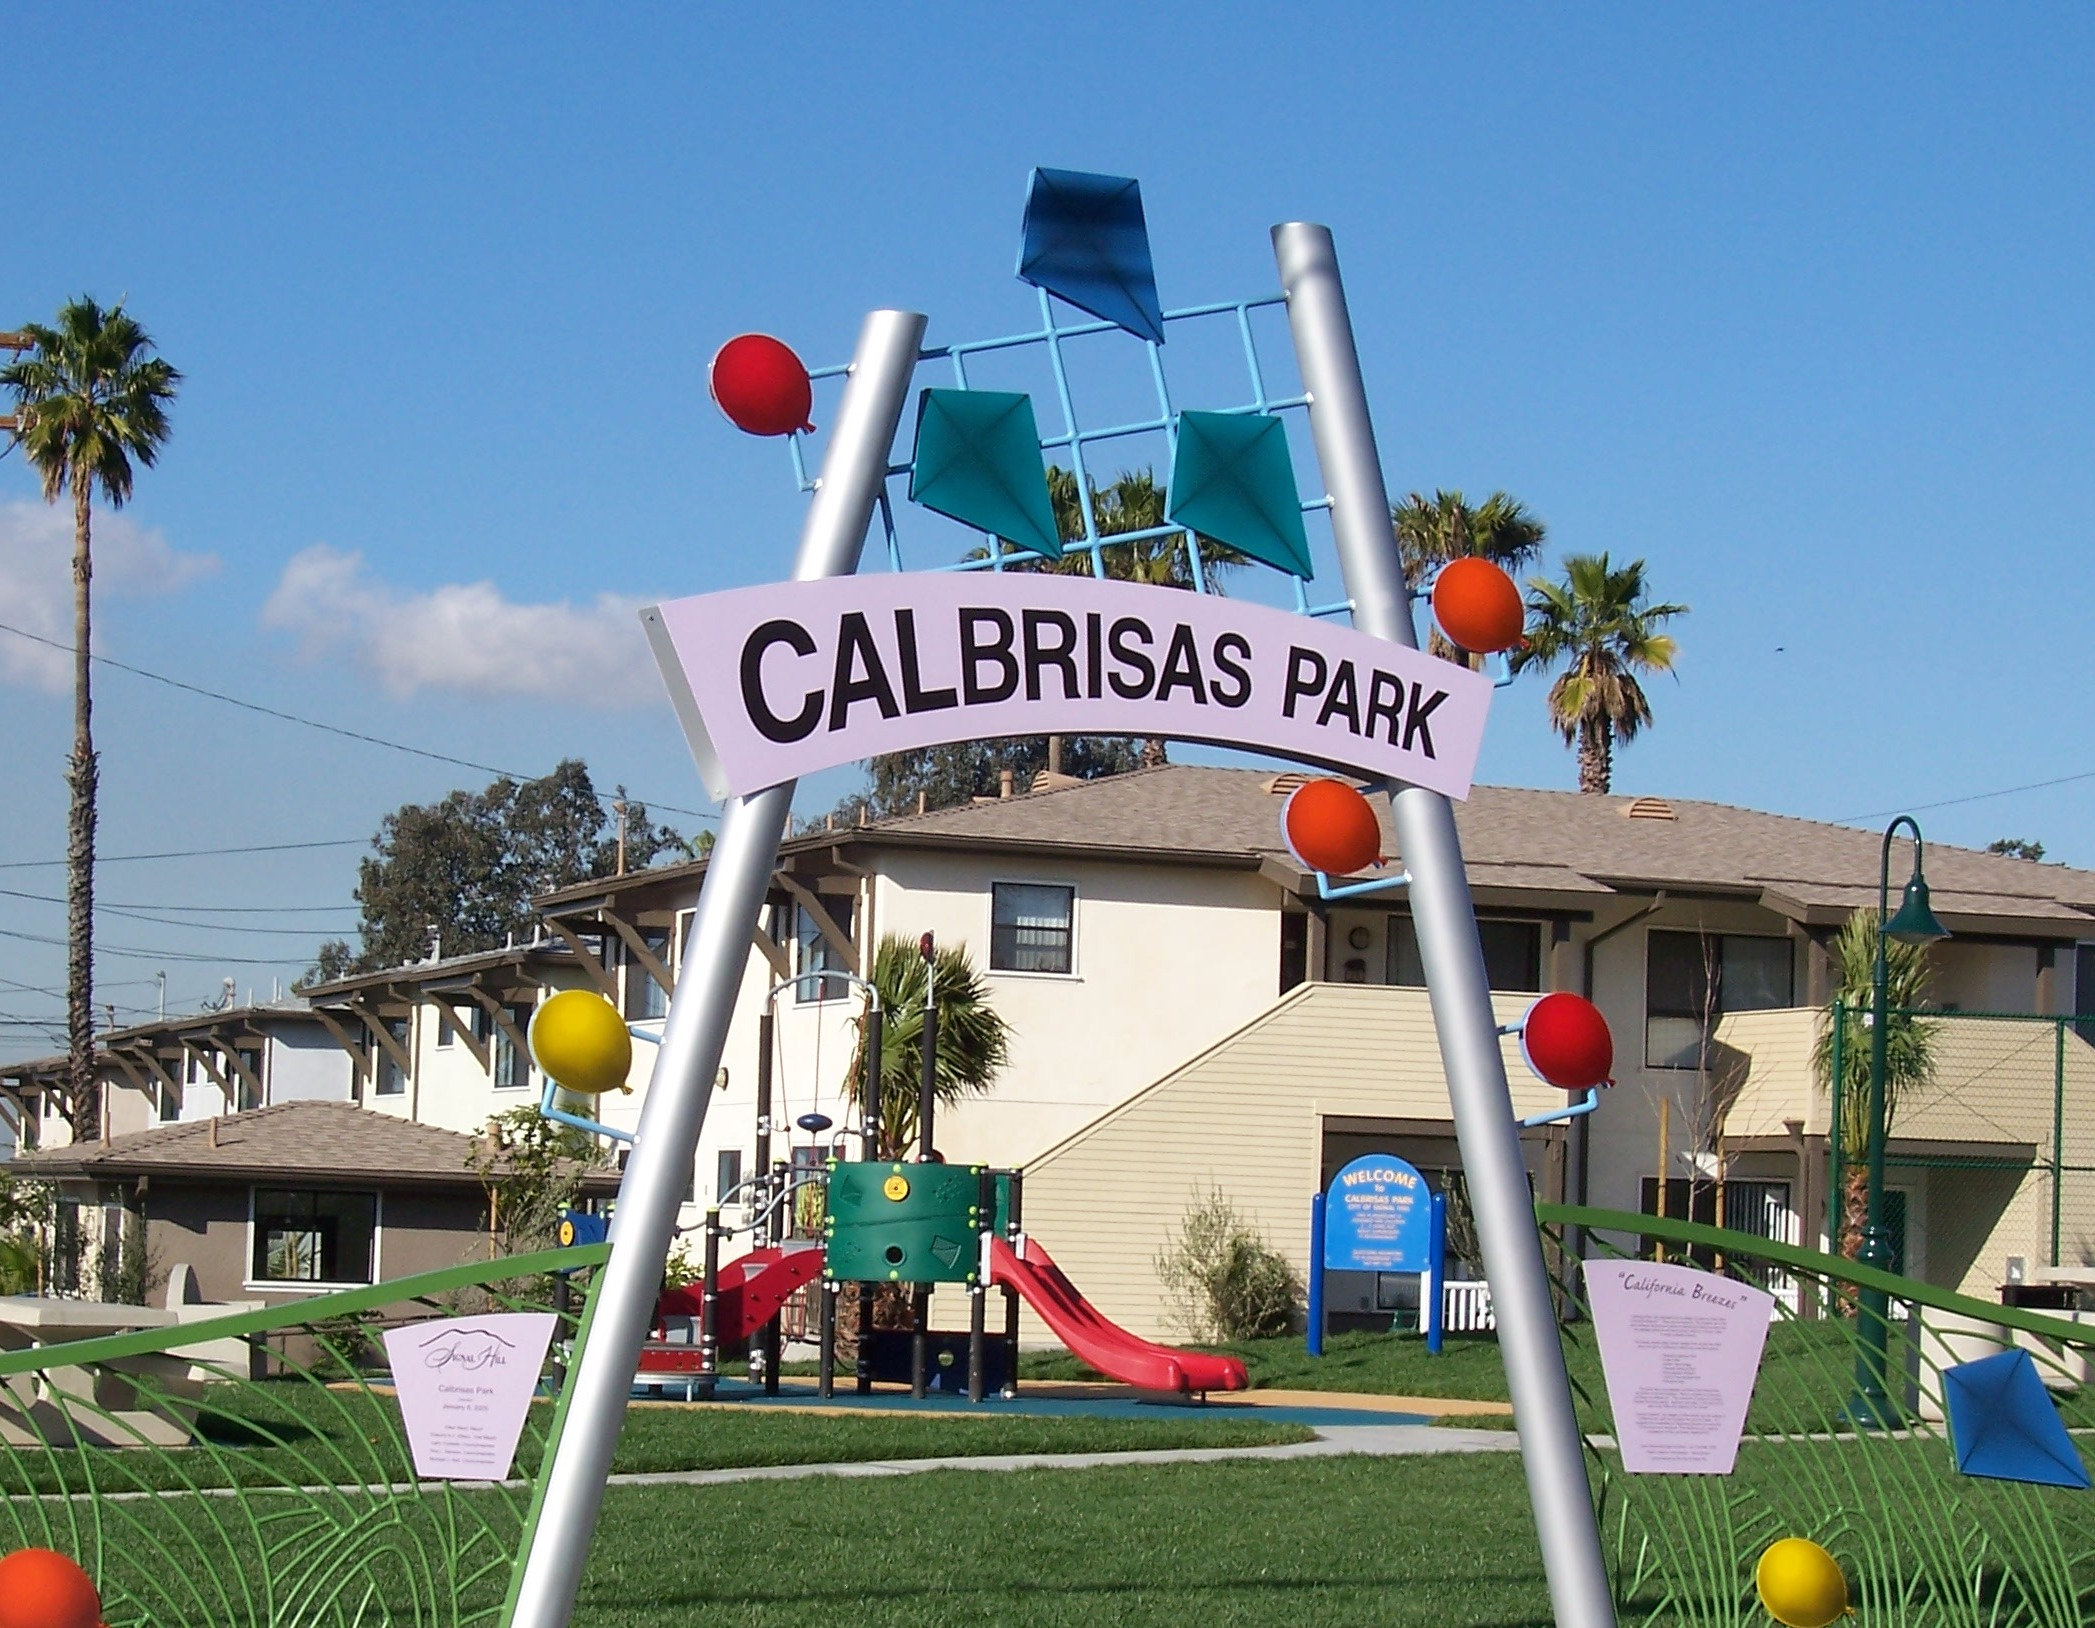 Calbrisas Park entrance sign